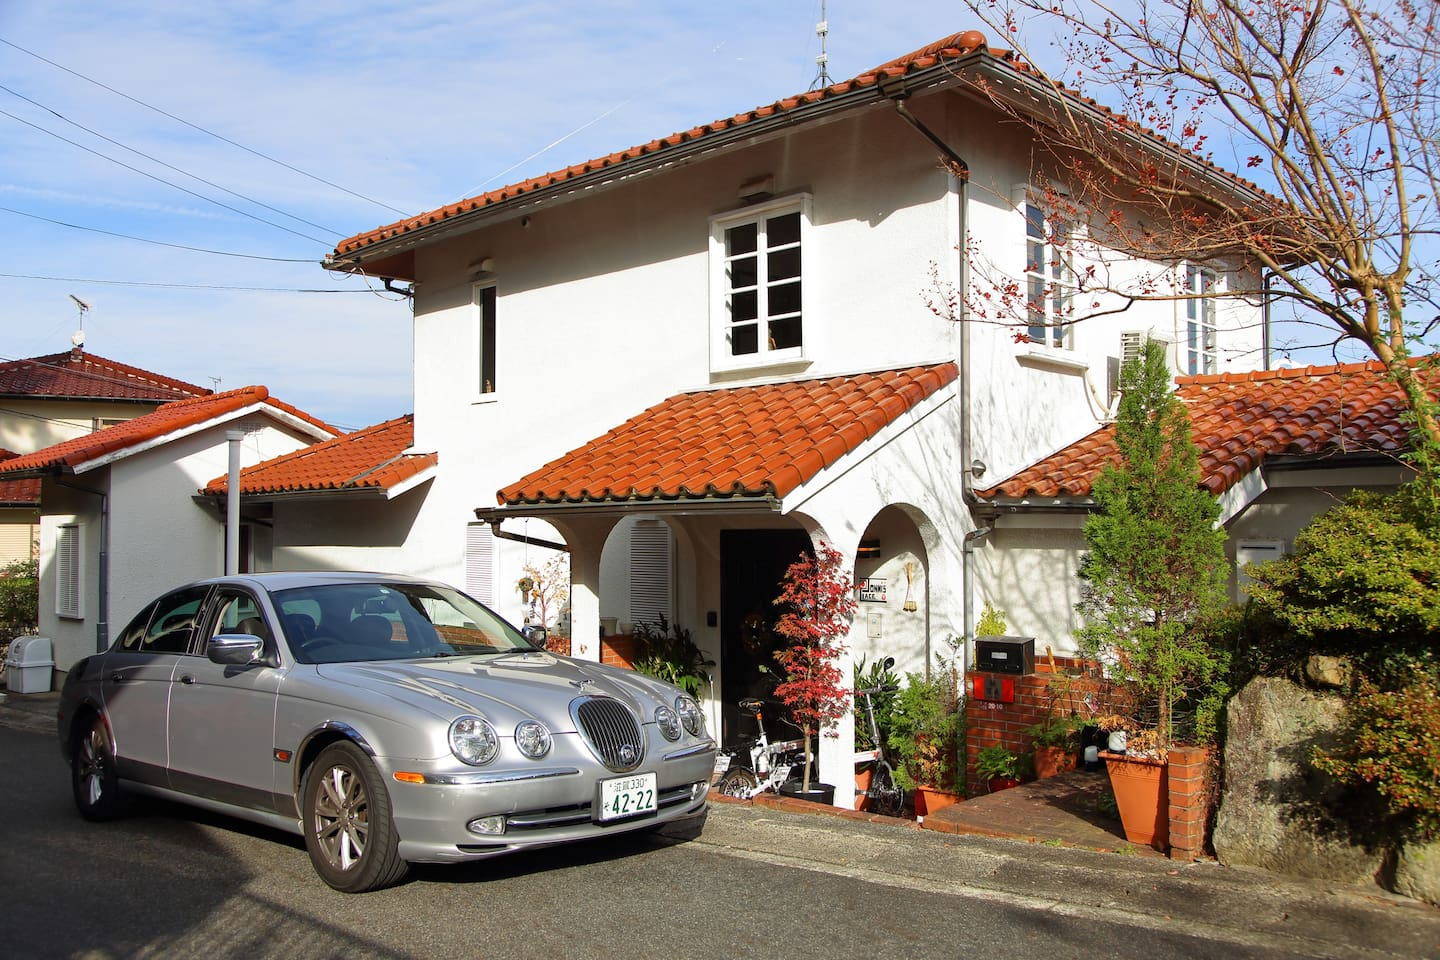 Italian Style house, English car in Hieizan Sakamoto a few trains stops from Kyoto